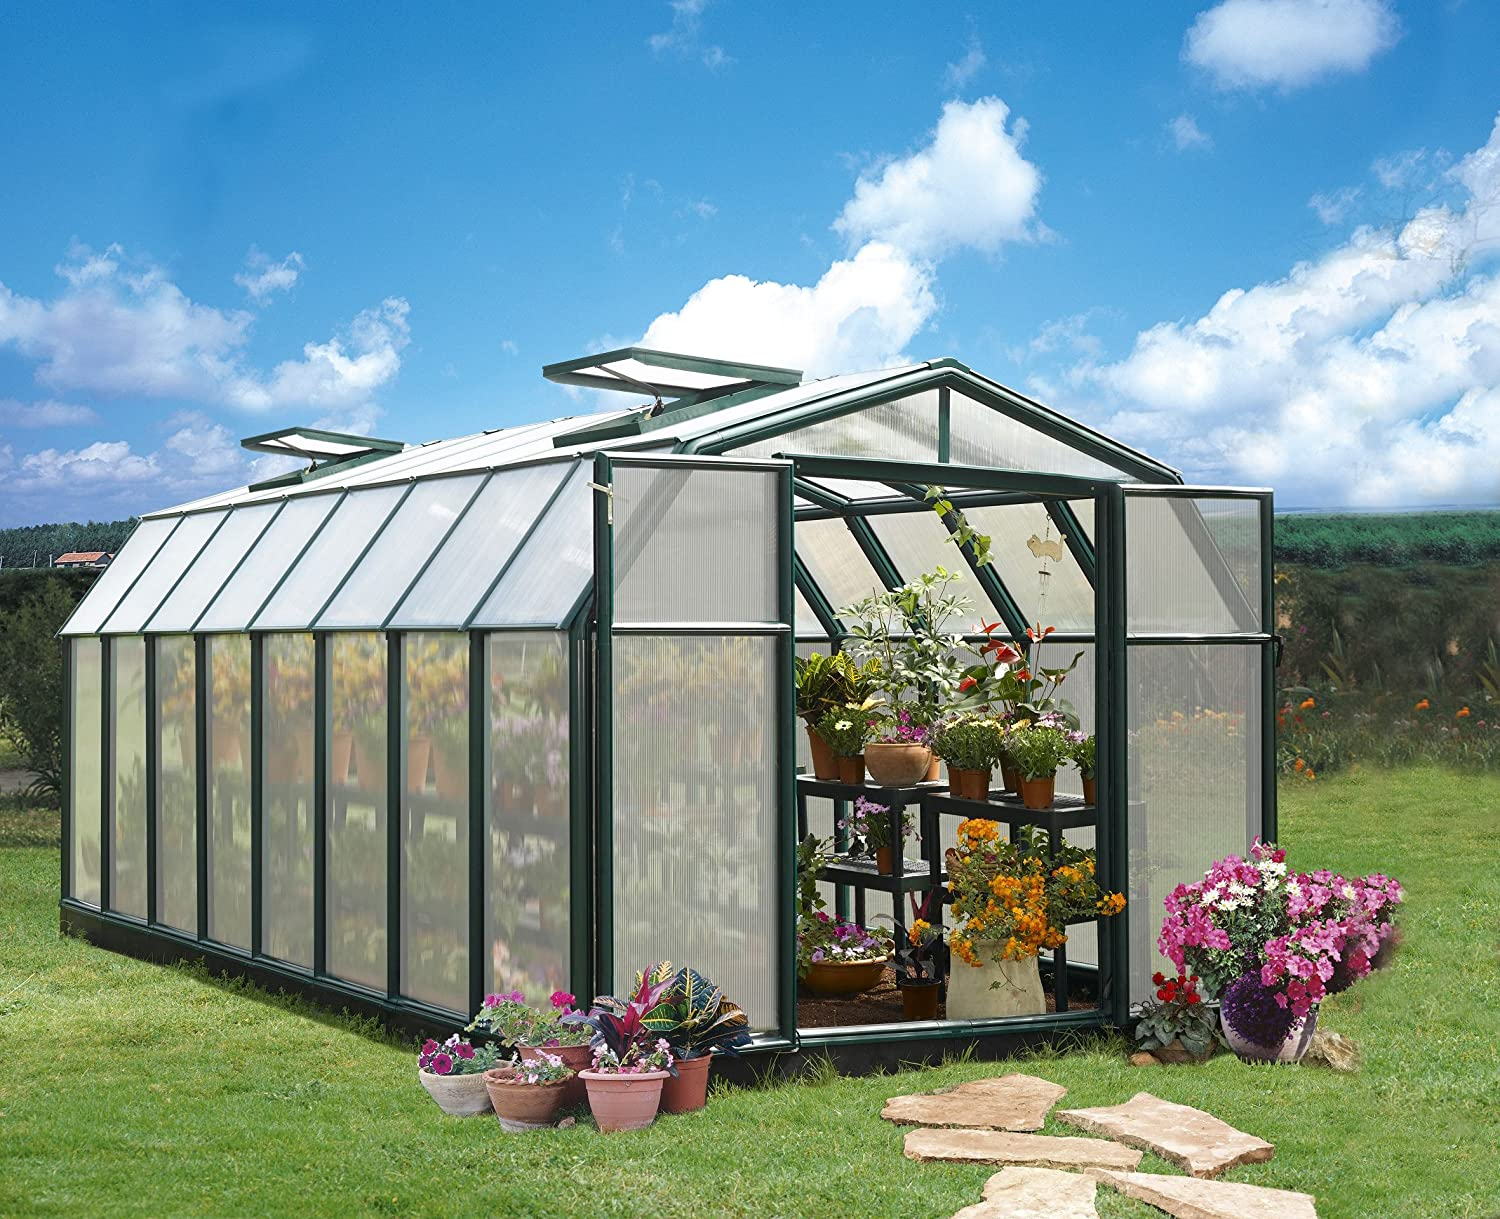 Amazon.com: RION Hobby 8 ft. 6 in. x 16 ft. 8 in. Paquete ...